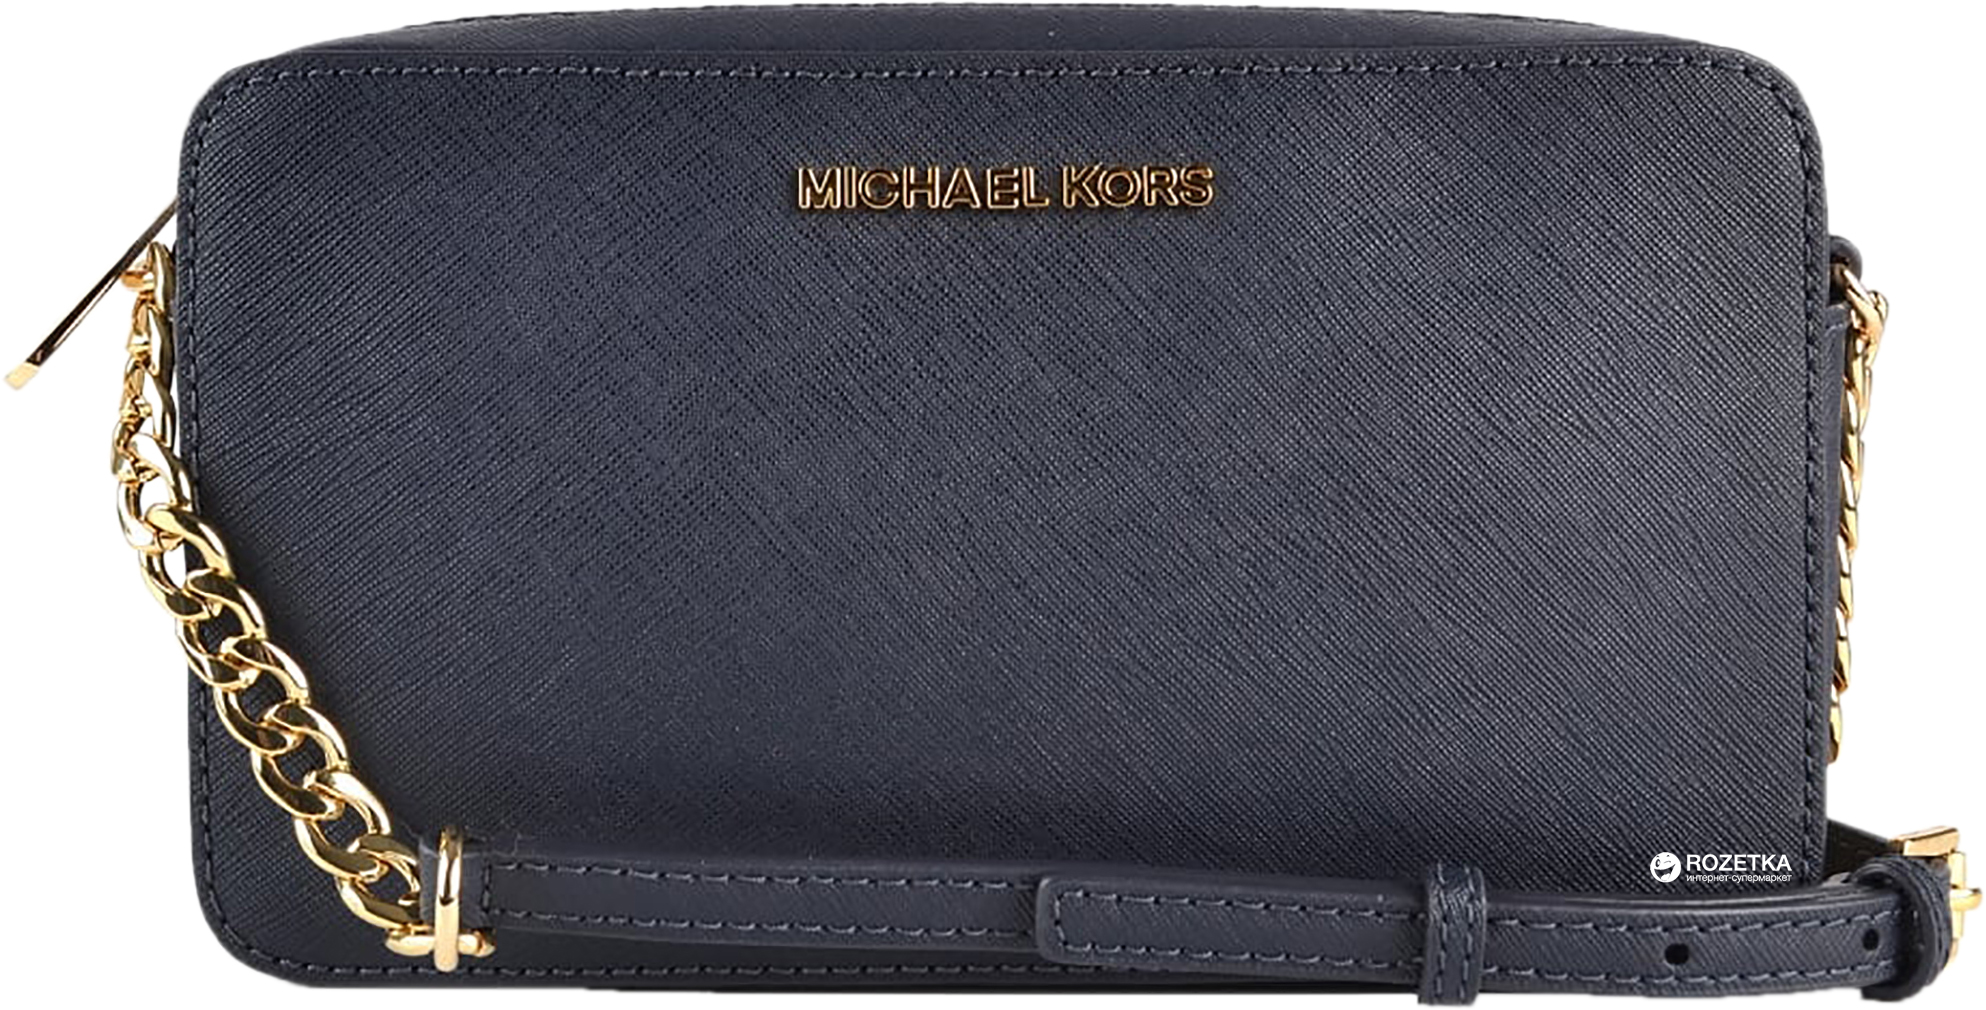 Сумка Michael Kors Jet Set Travel 32T6GTVC6LADMIRAL Синяя 890b4b32c49